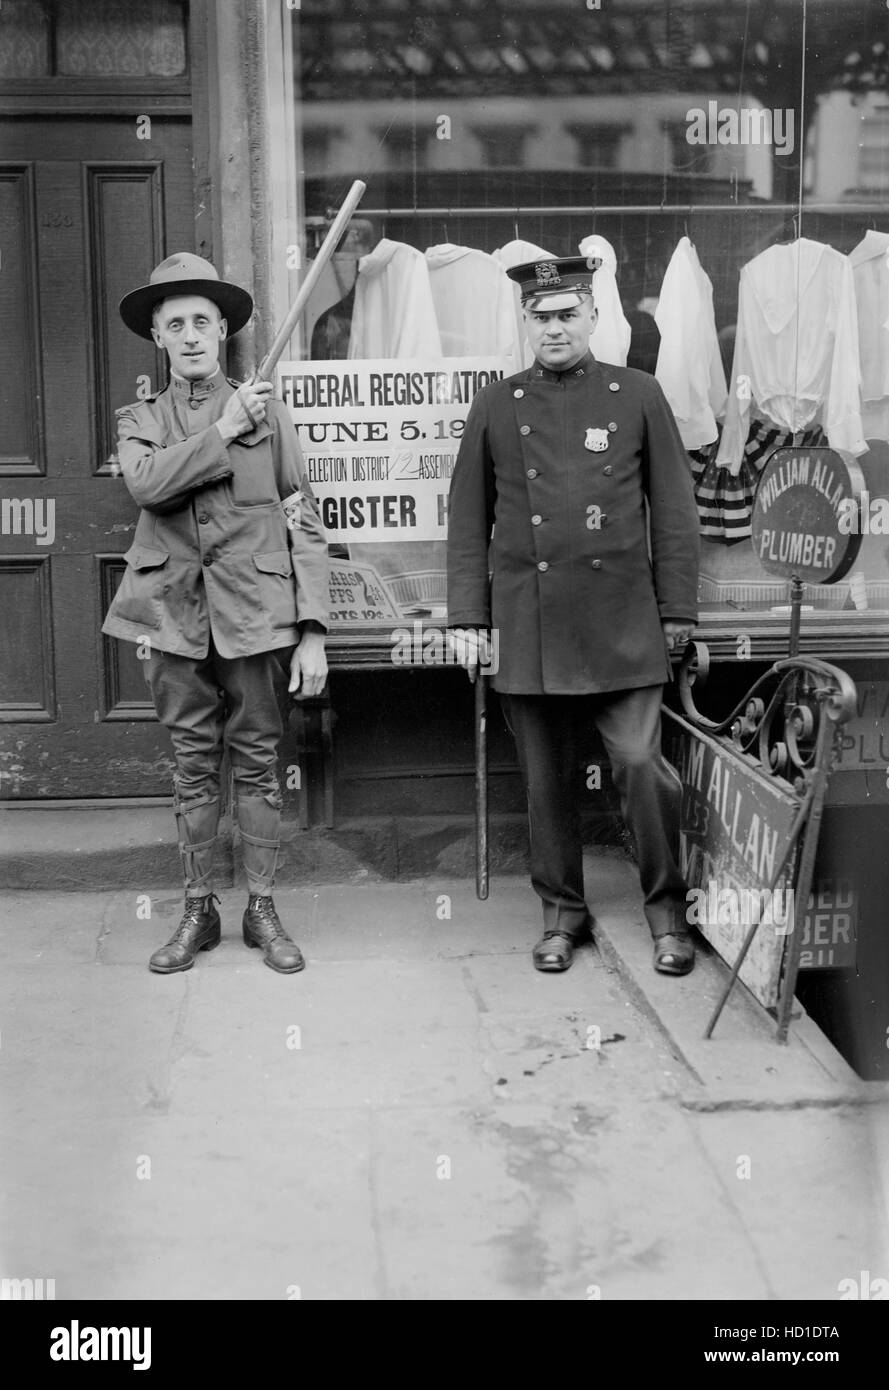 Police Officer and Guard at Draft Registration Office during World War I, New York City, New York, USA, Bain News - Stock Image